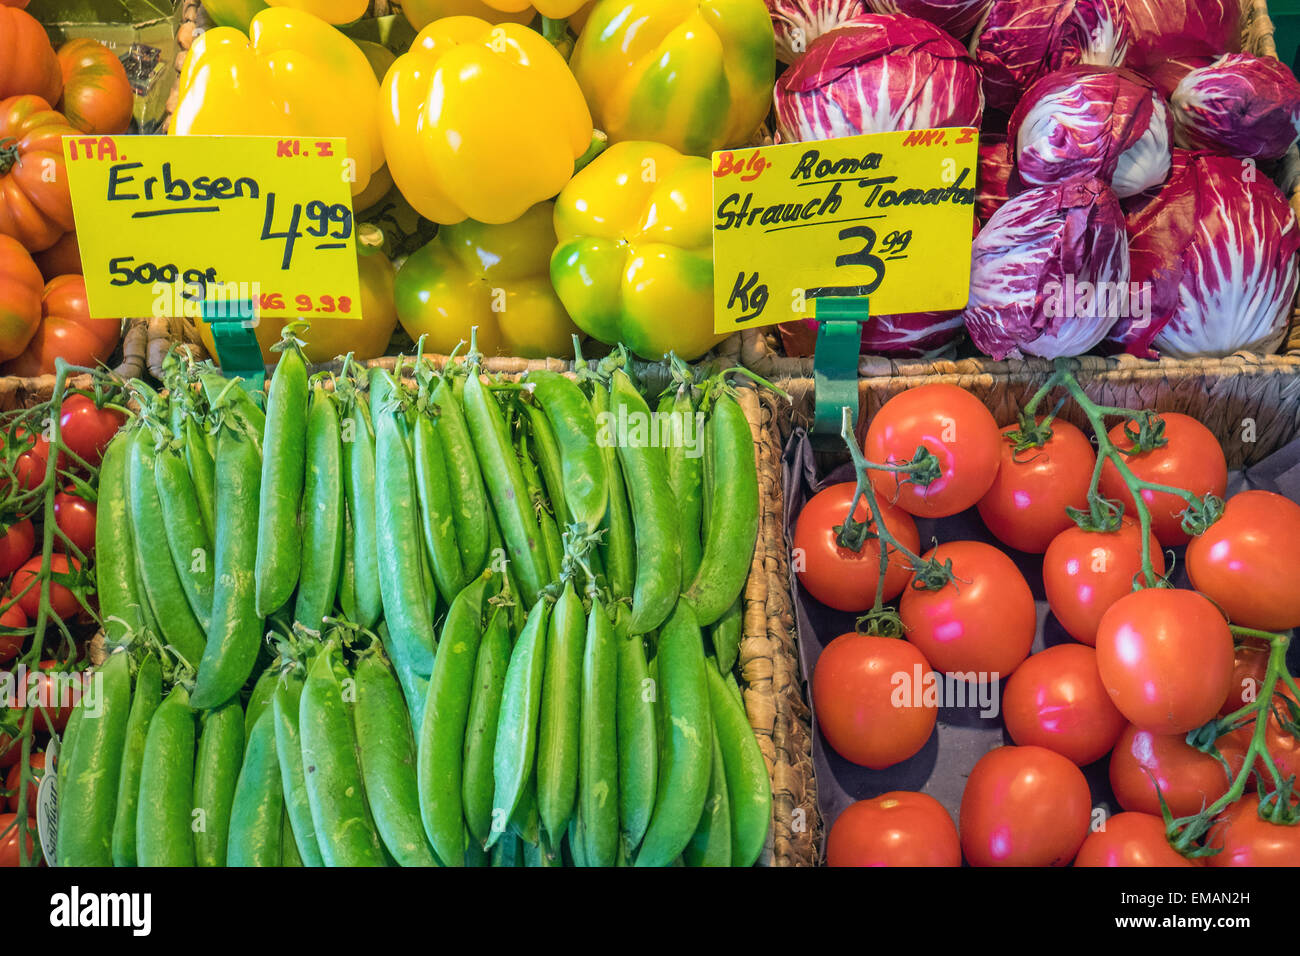 Fresh vegetables for sale at the greengrocery - Stock Image